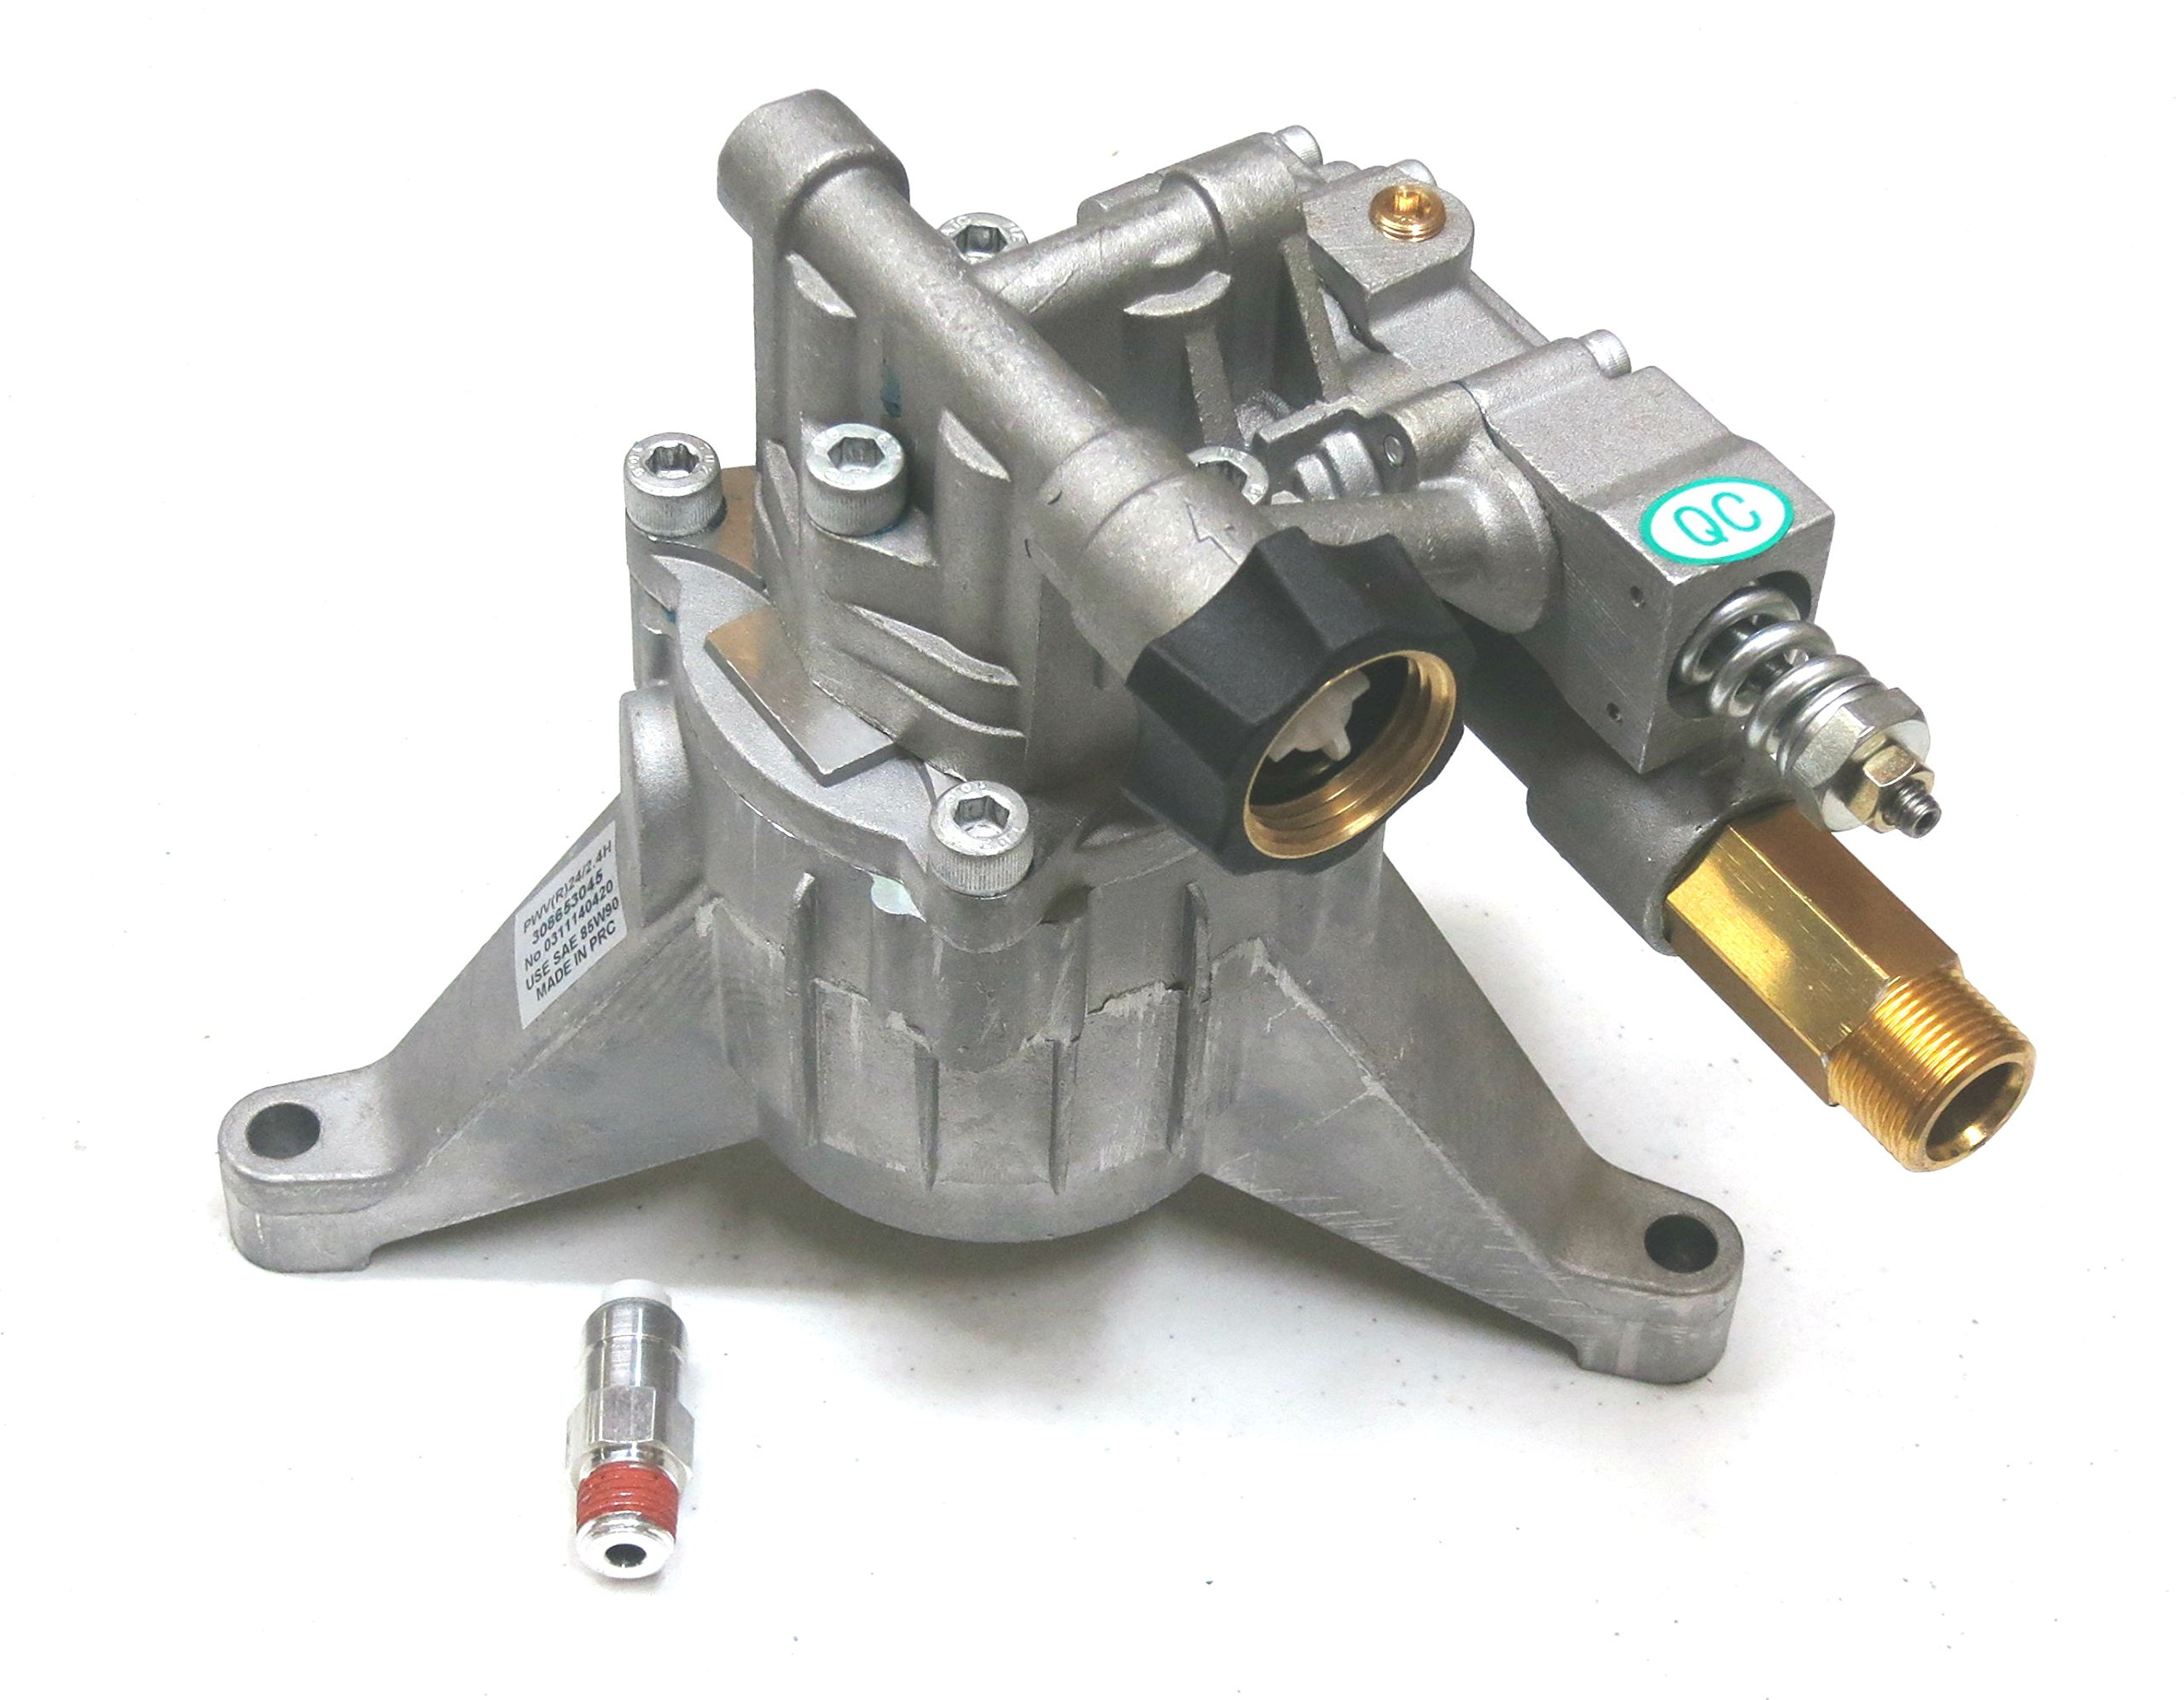 Himore 2800 psi POWER PRESSURE WASHER WATER PUMP Troy-Bilt 020568 020568-00 by Haliniose